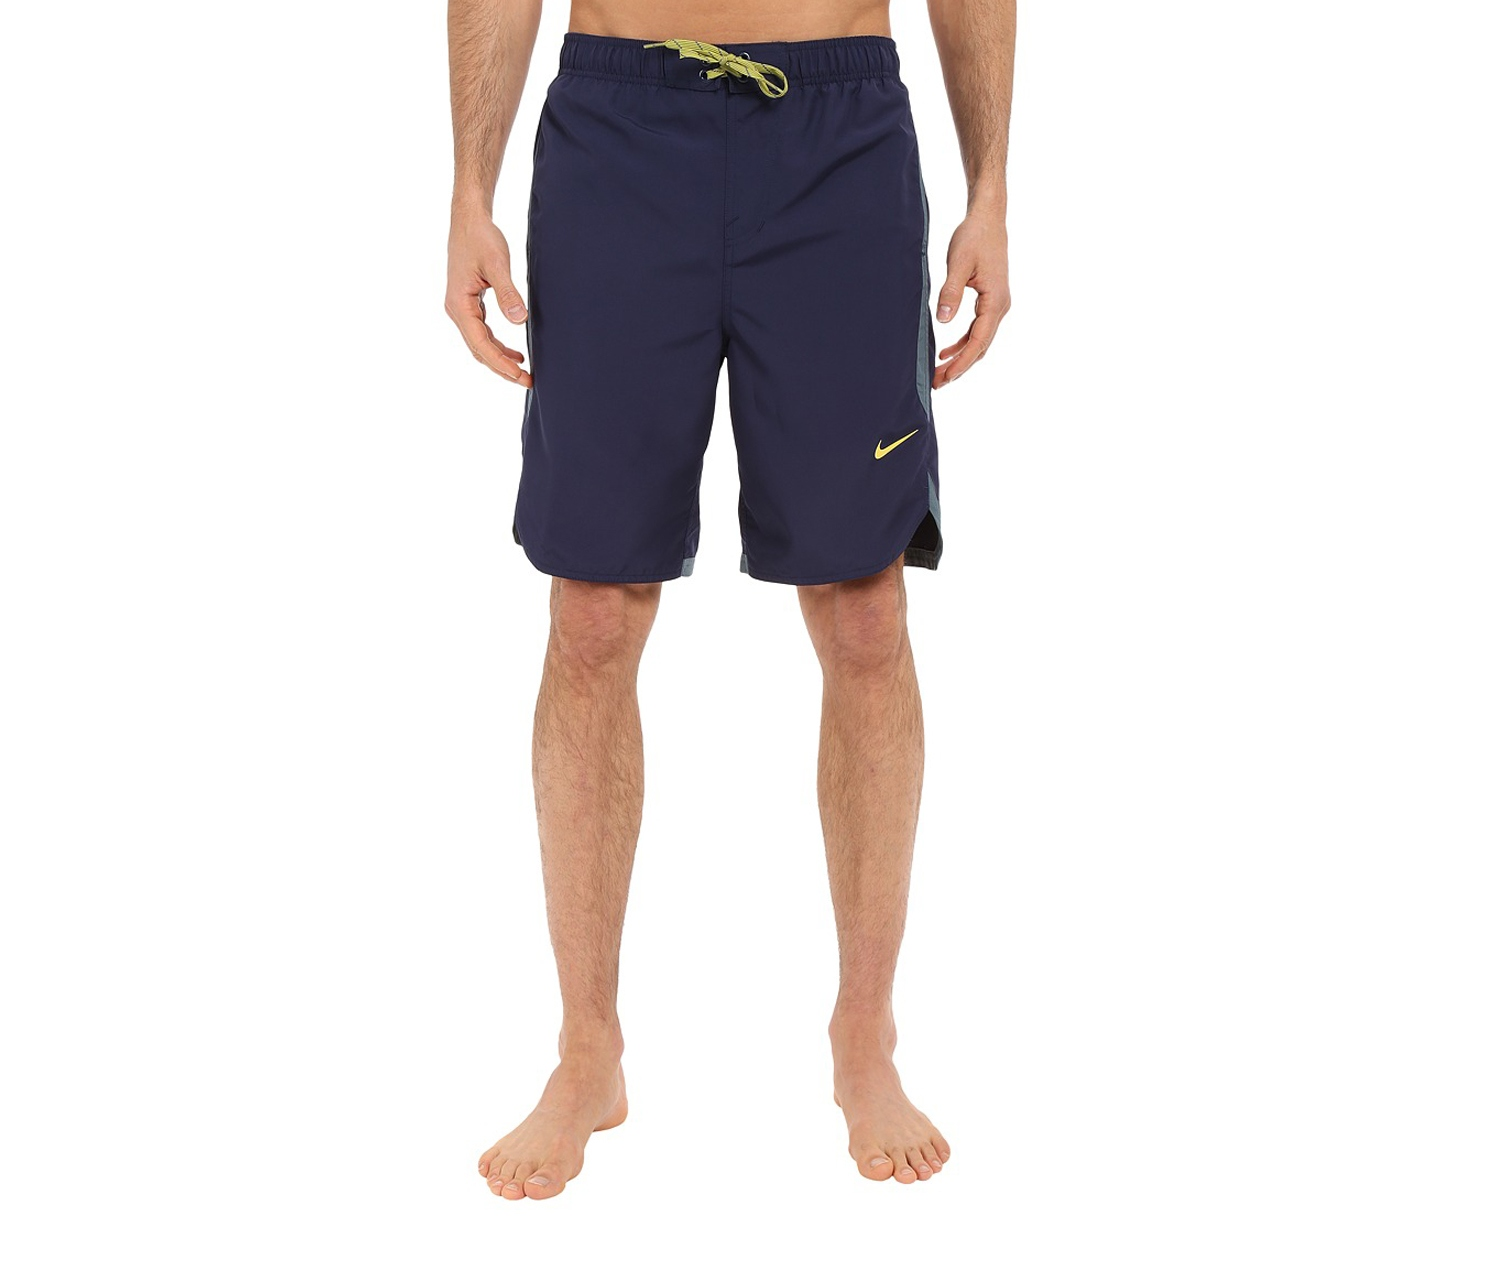 d5553ee980 Shop Nike Nike Solid Volley Swim Trunks, Midnight for Men Clothing ...